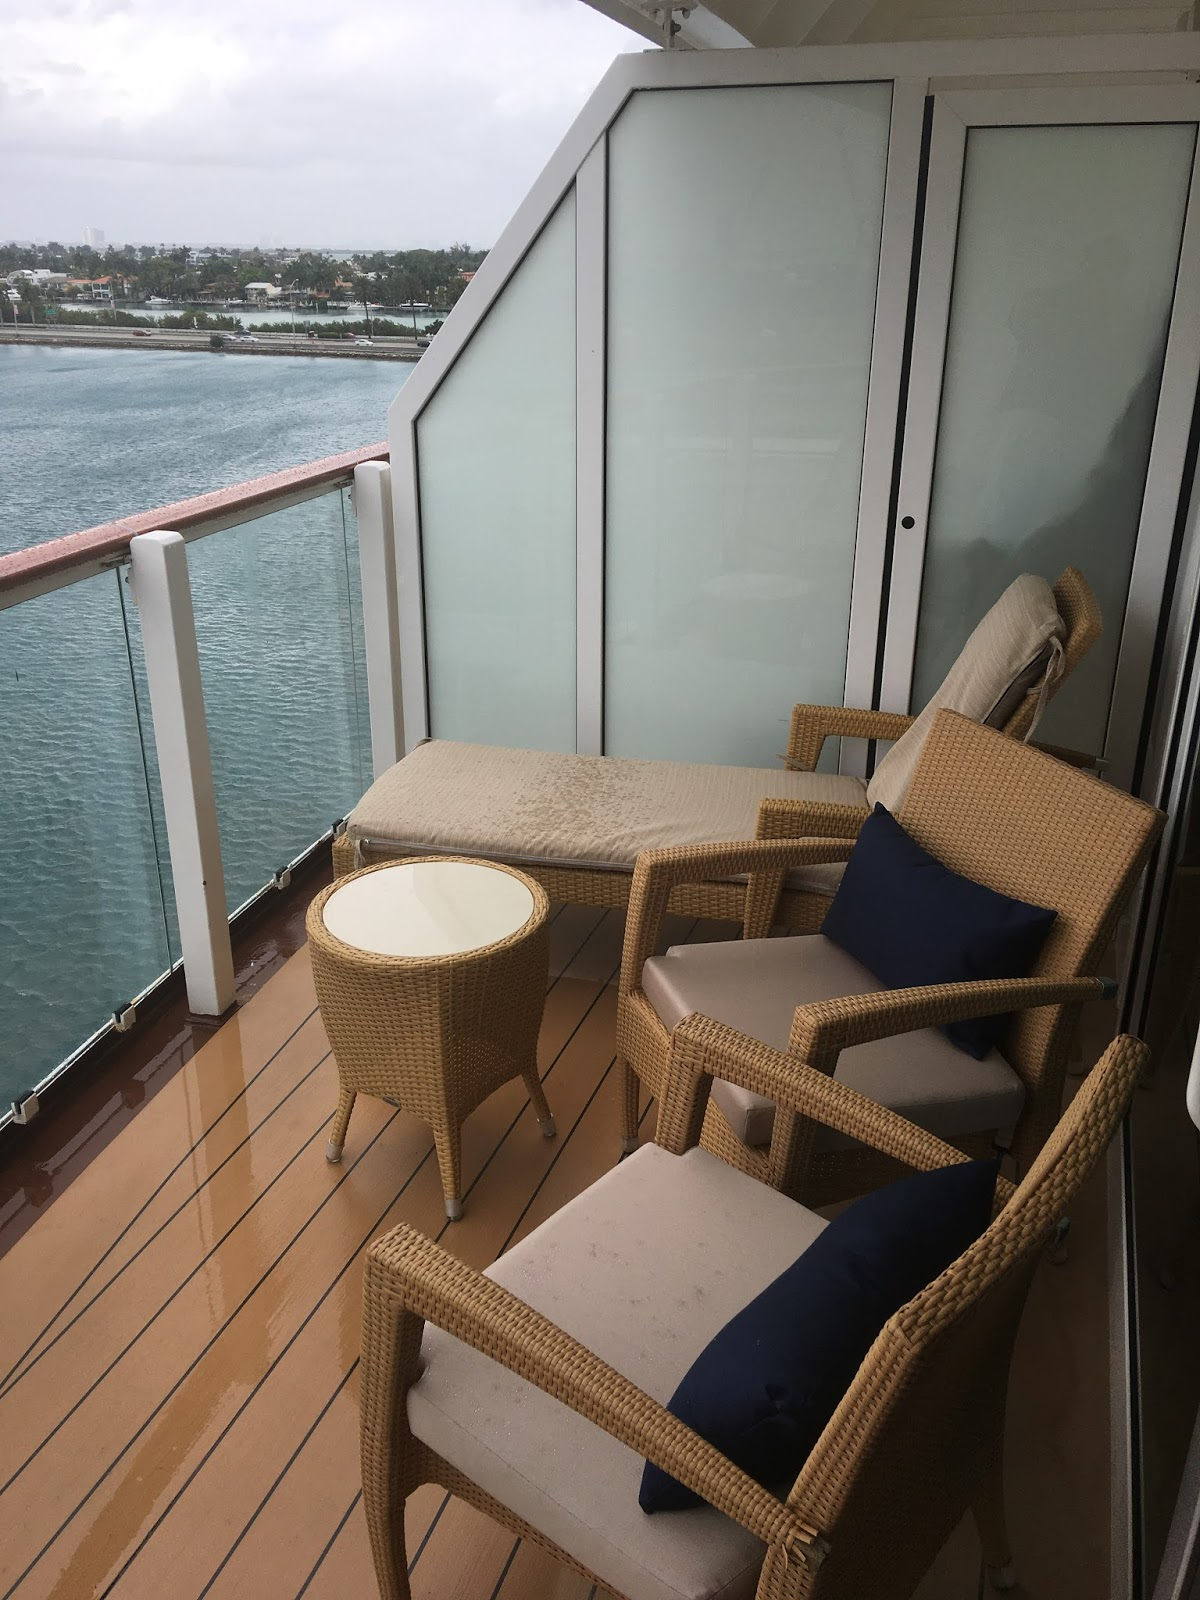 The Cheerful Cruiser Our First Suite Experience The